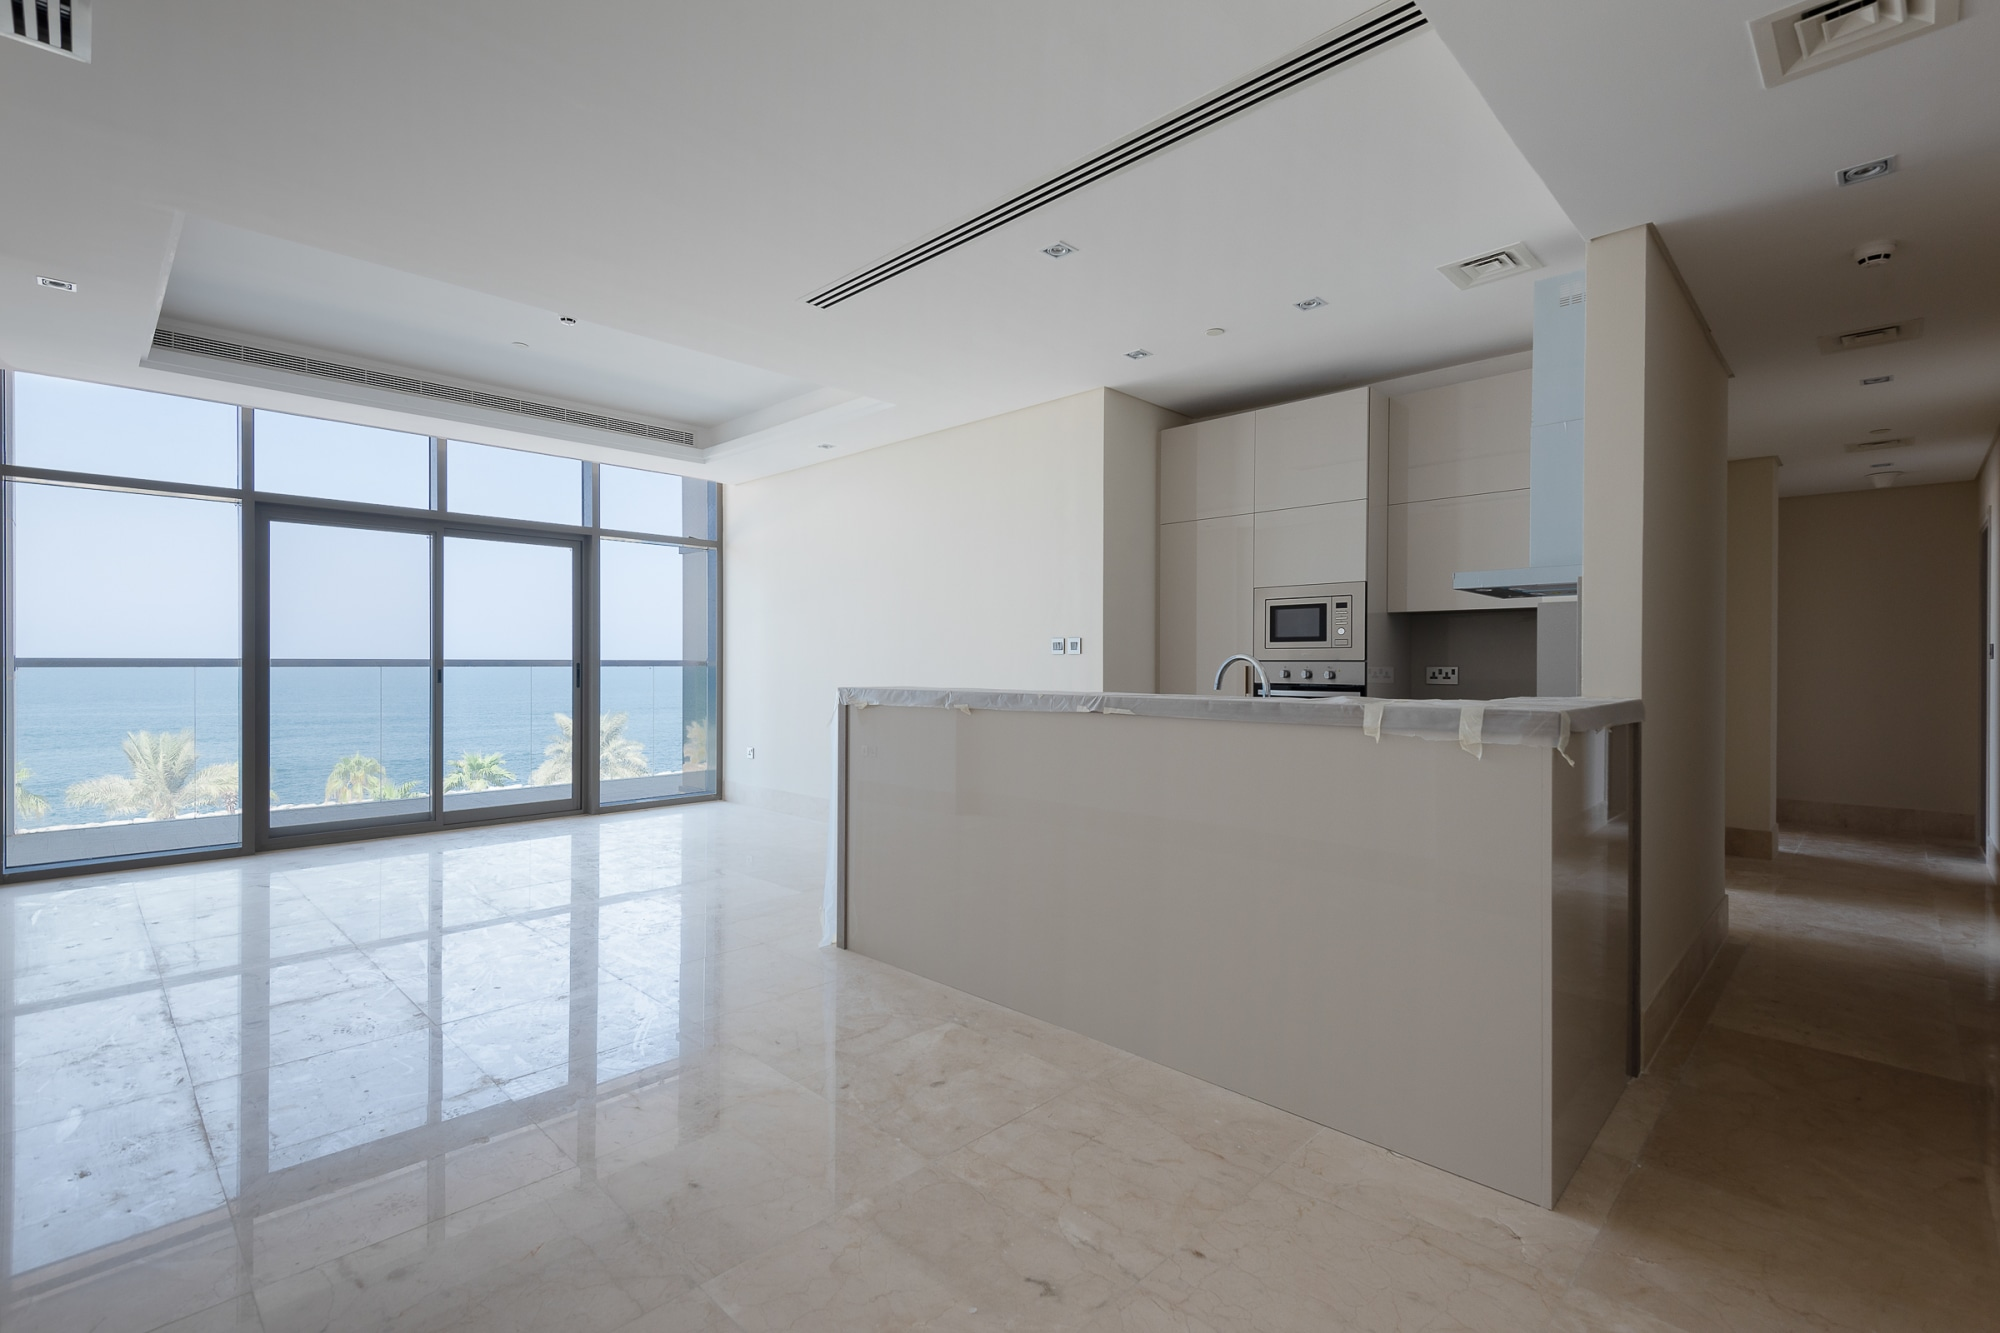 3 Bedroom | High Floor | Payment Plan Available